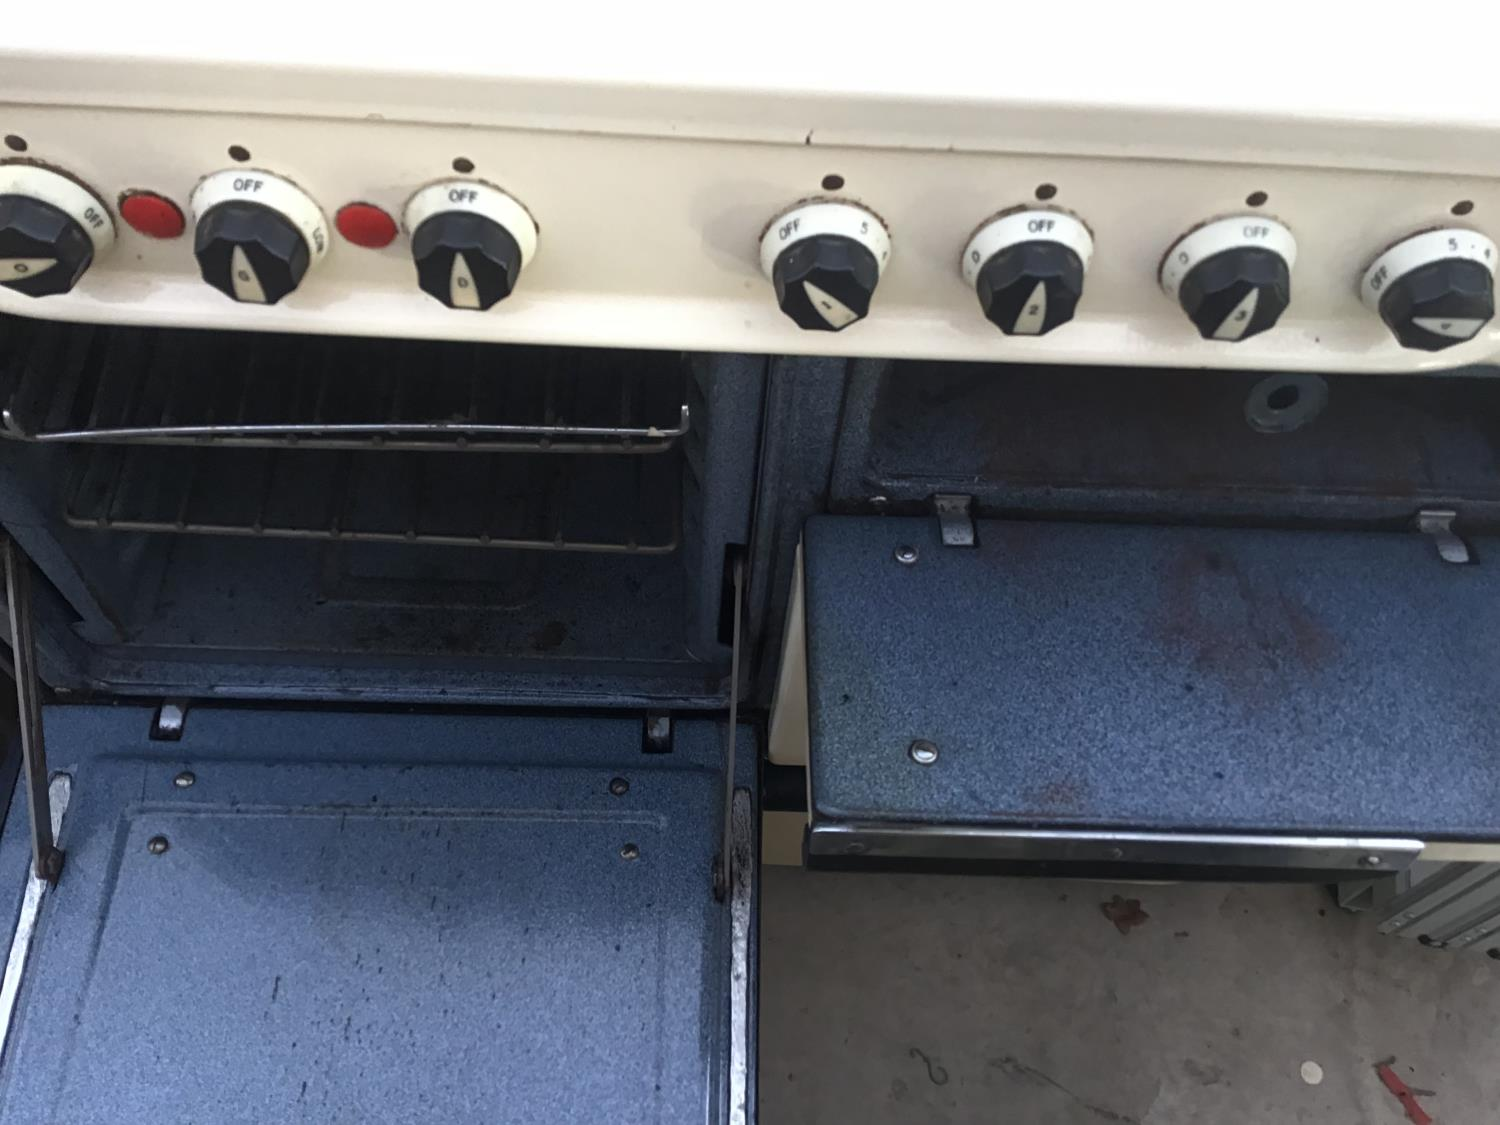 Lot 36 - A RETRO ELECTRIC COOKER WITH FOUR RINGS AND VARIOUS OVENS/WARMING DRAWERS